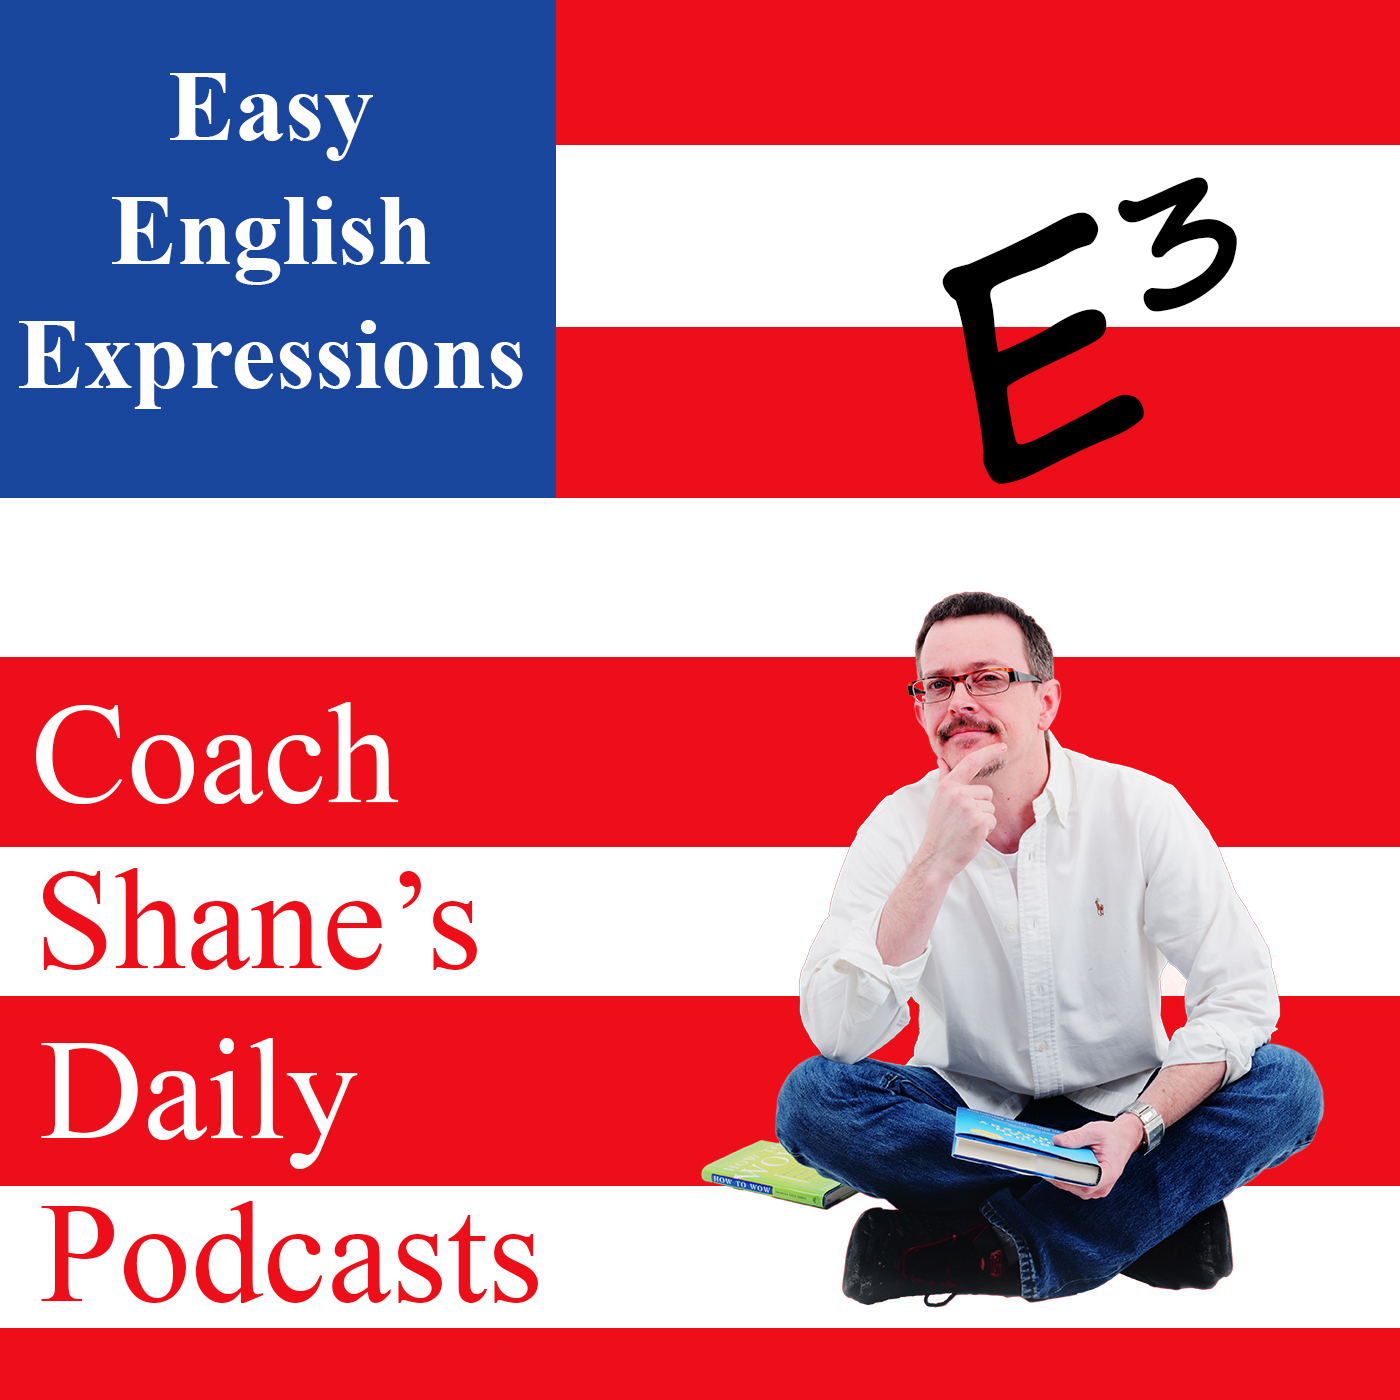 52 Daily Easy English Expression PODCAST—the apple of one's eye